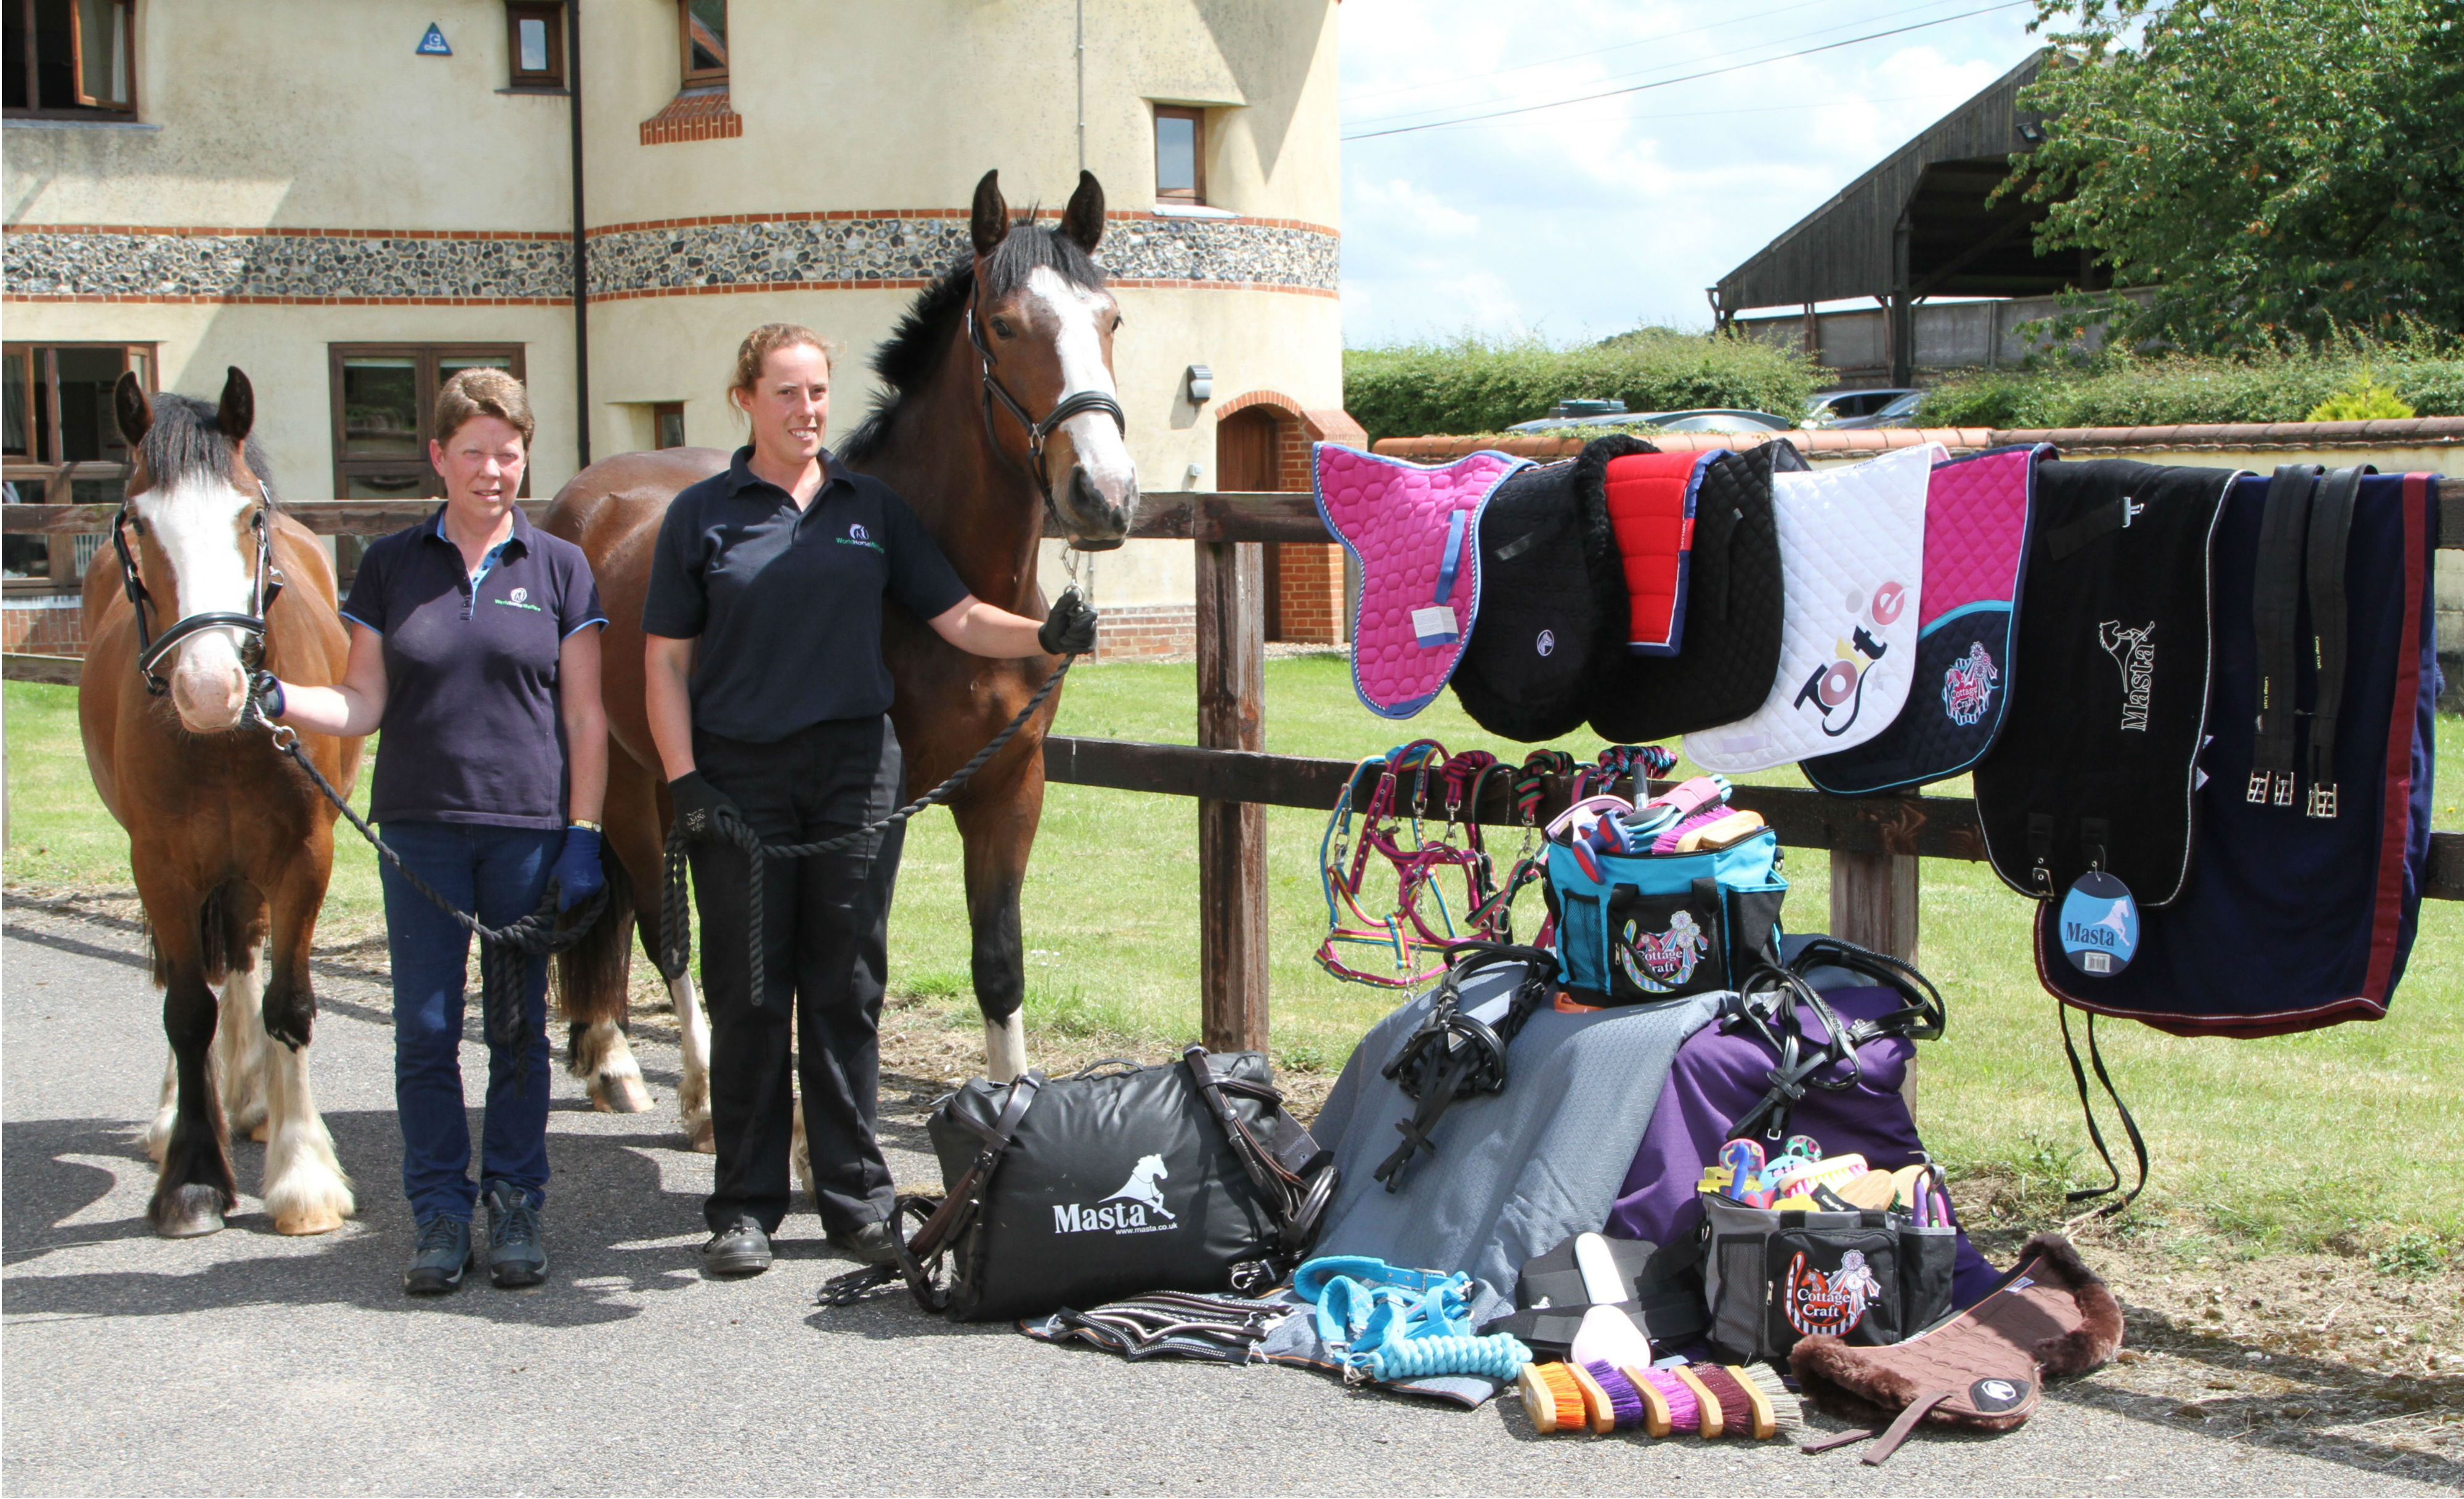 Matchmakers International donation at World Horse Welfare image - Generous donation helps horses in crisis